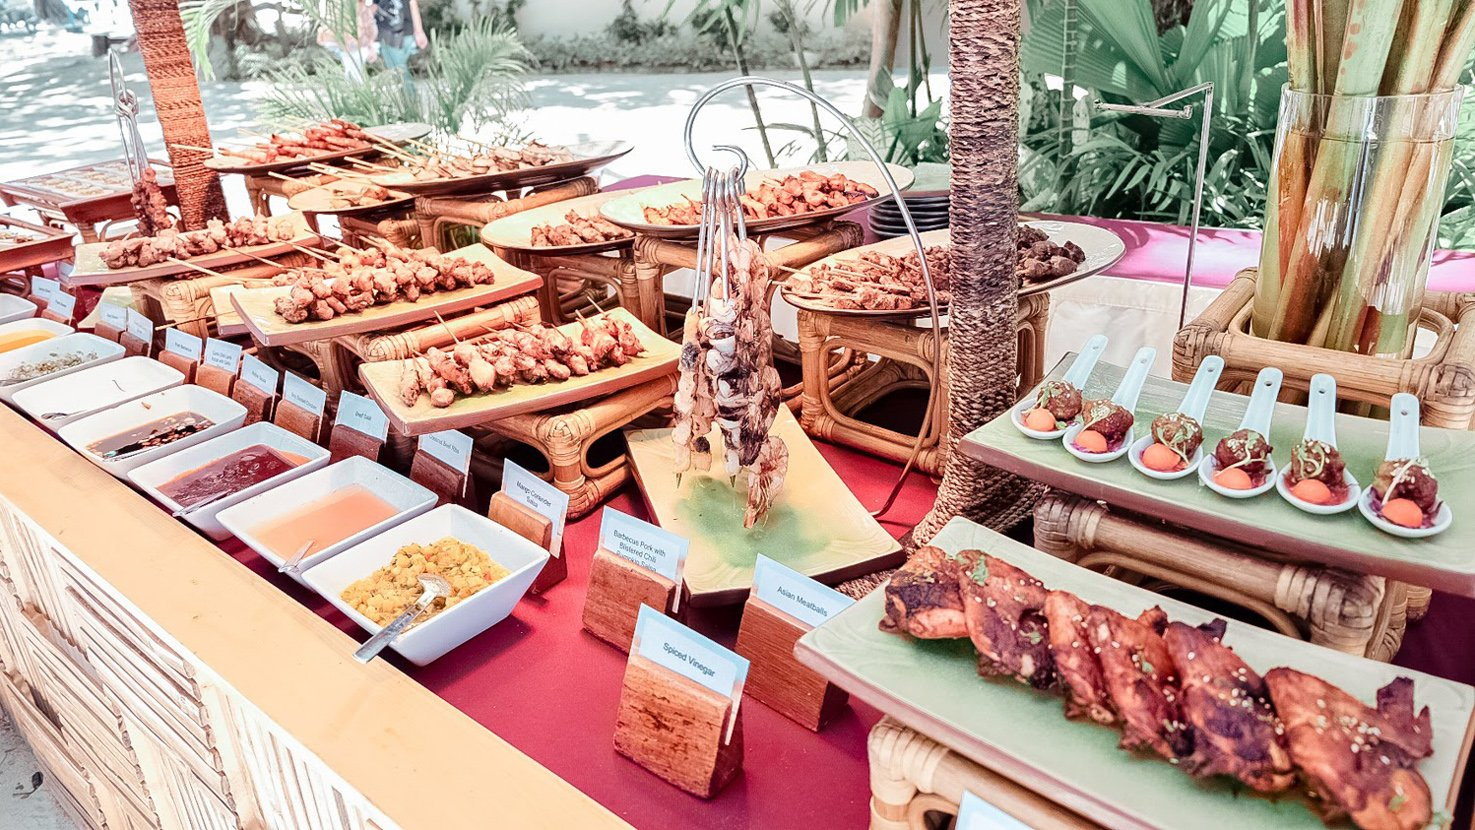 JOY OF FOOD: THEMED DINNERS AT BLUEWATER MARIBAGO BEACH RESORT